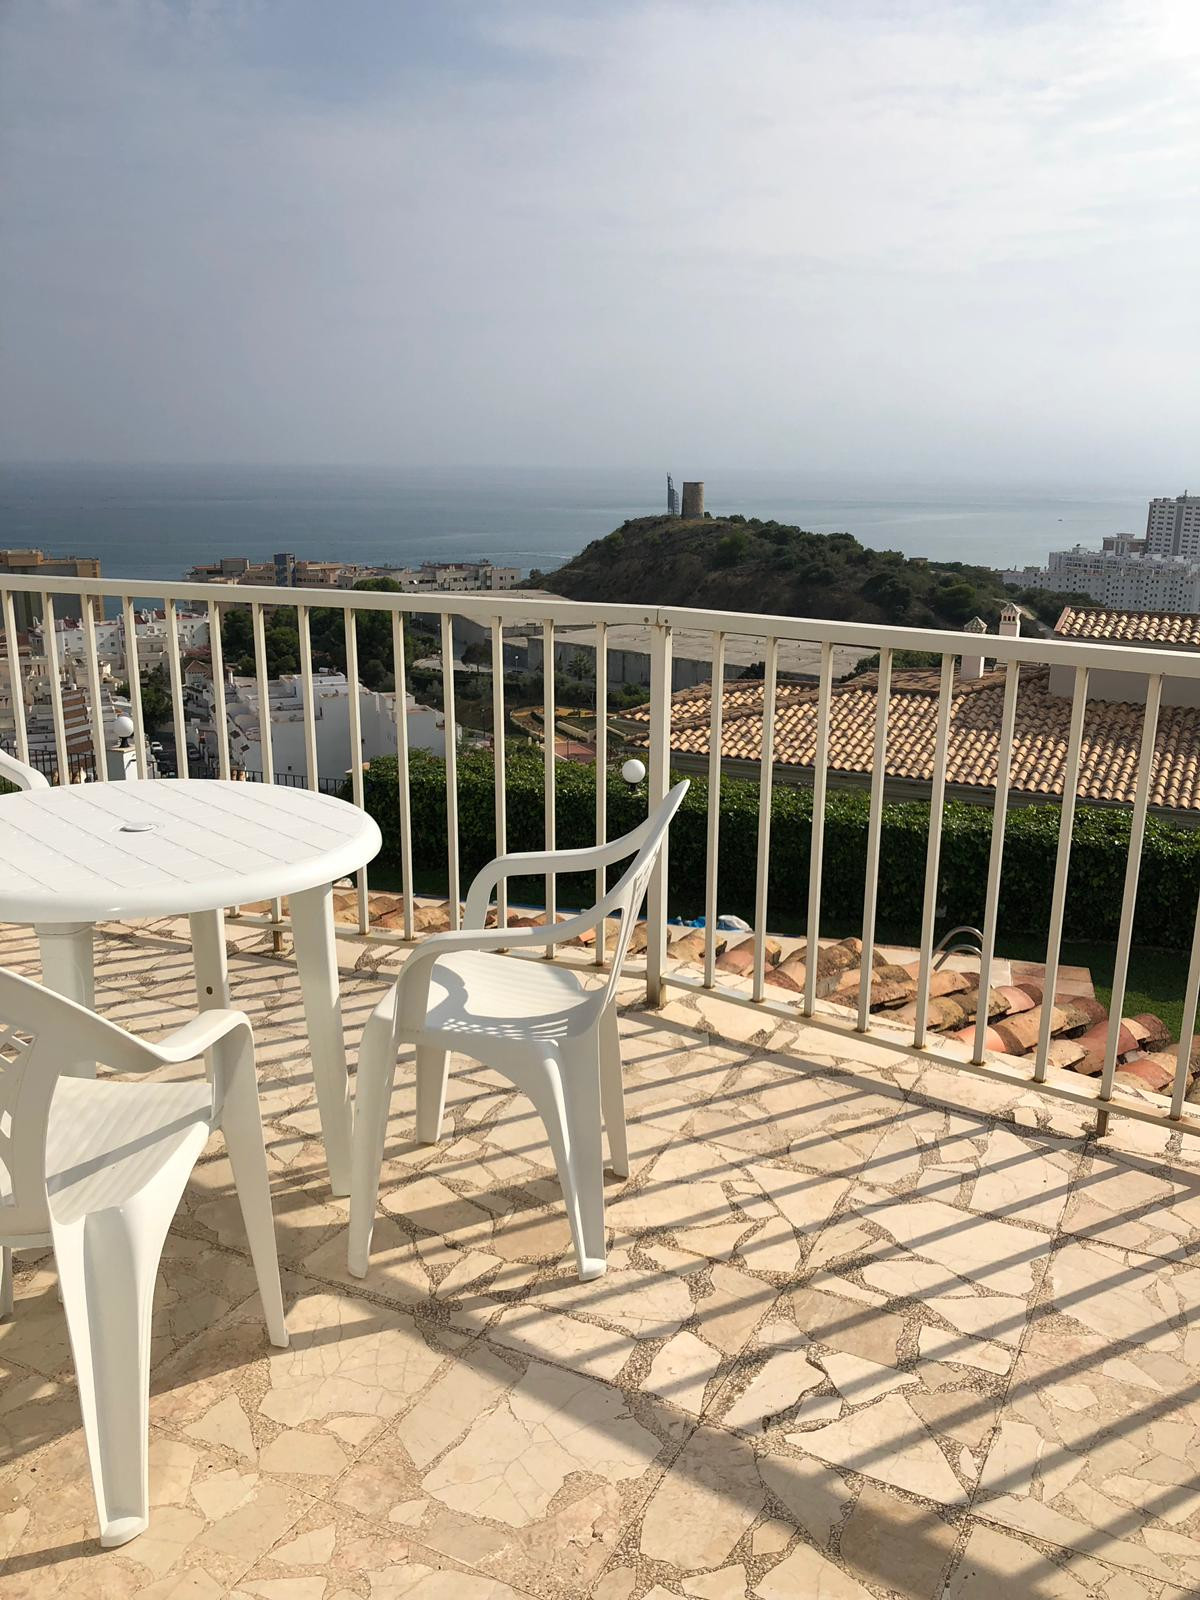 For sale 966m2 plot and Villa on it, plot has 900m2 right to build, plot is flat, and can be buildt ,Spain